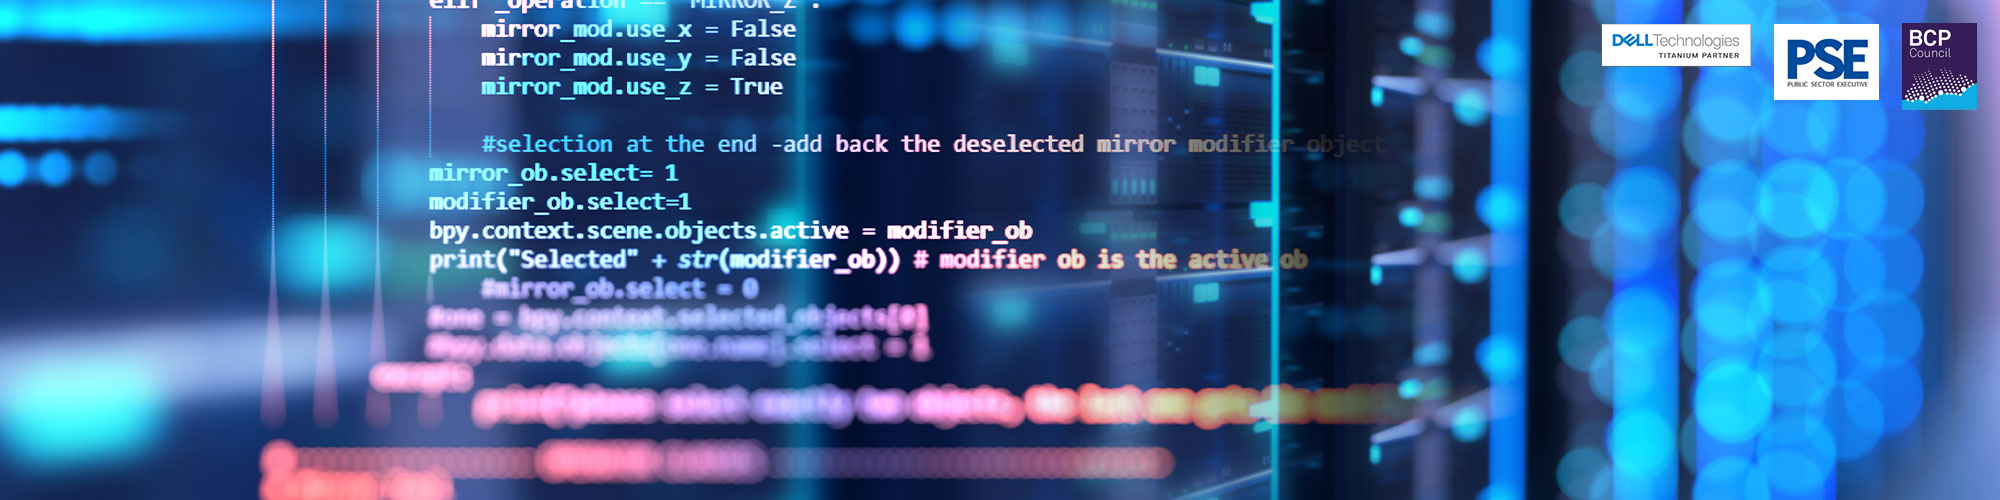 Cyber Attacks are the enemy of any data-driven organisation. How do you protect yours?